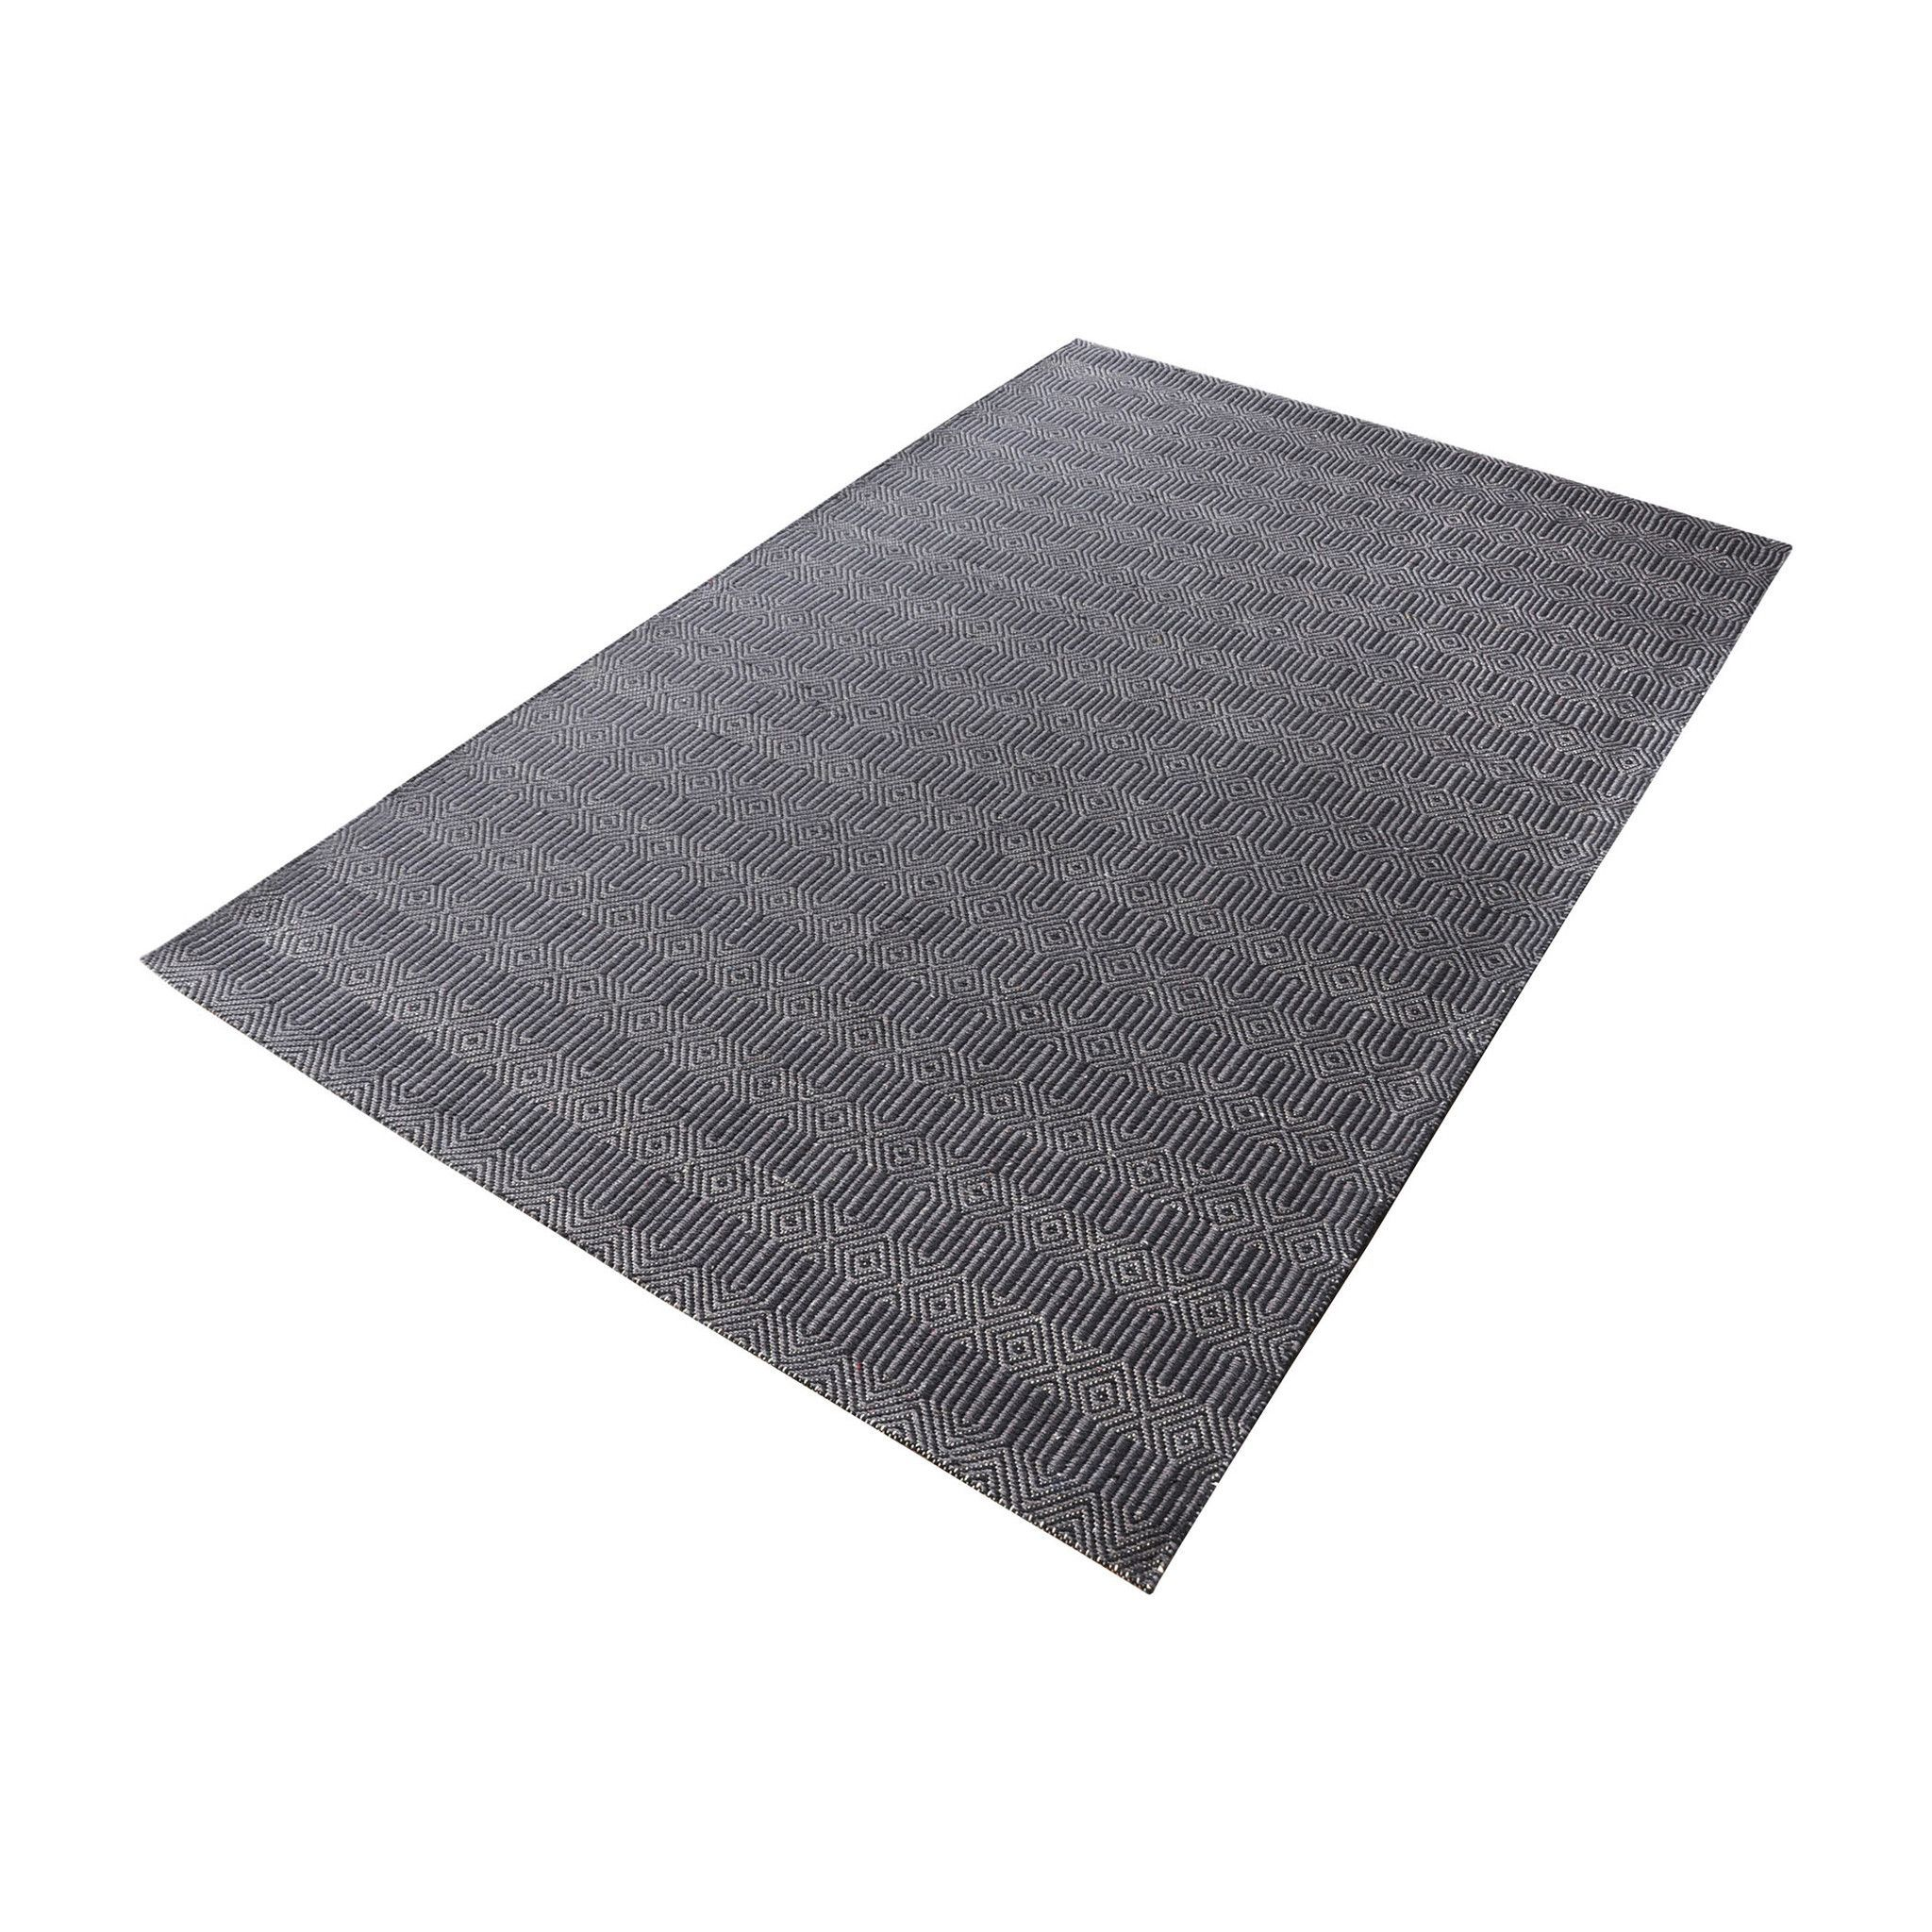 Ronal Handwoven Cotton Flatweave In Charcoal - 8ft x 10ft